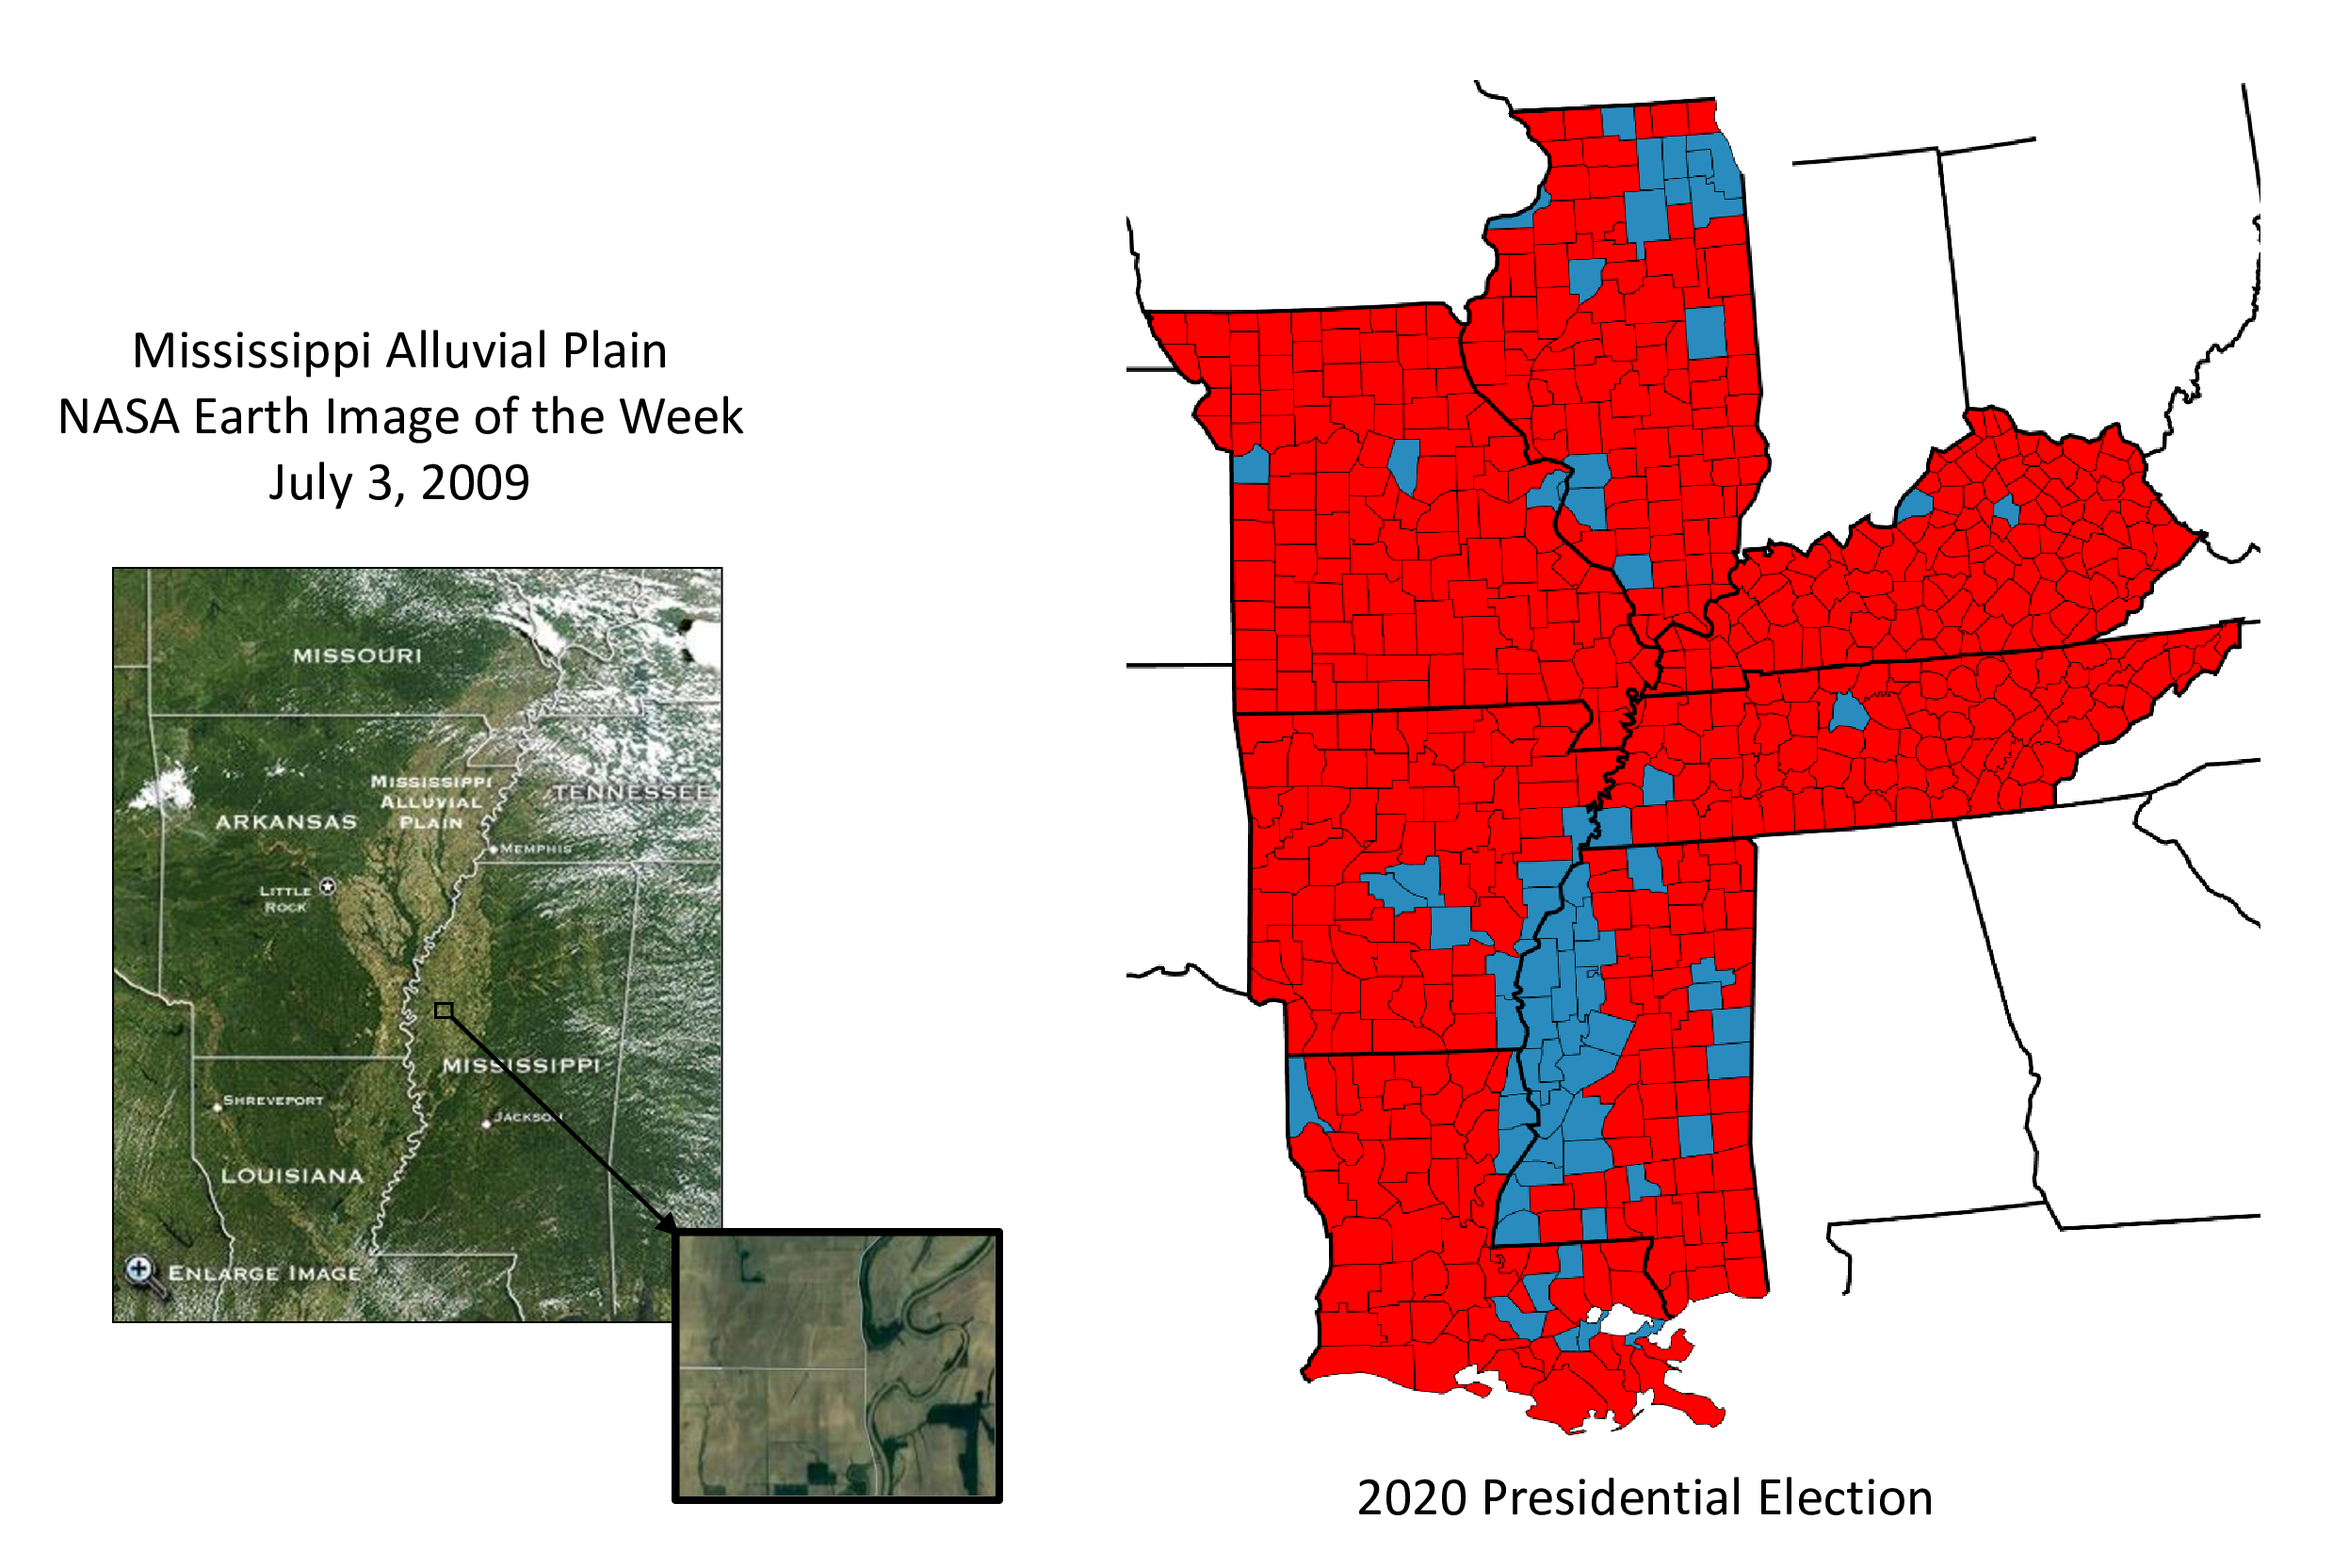 Mississippi Alluvial Plain, NASA satellite imagery and 2020 presidential election map